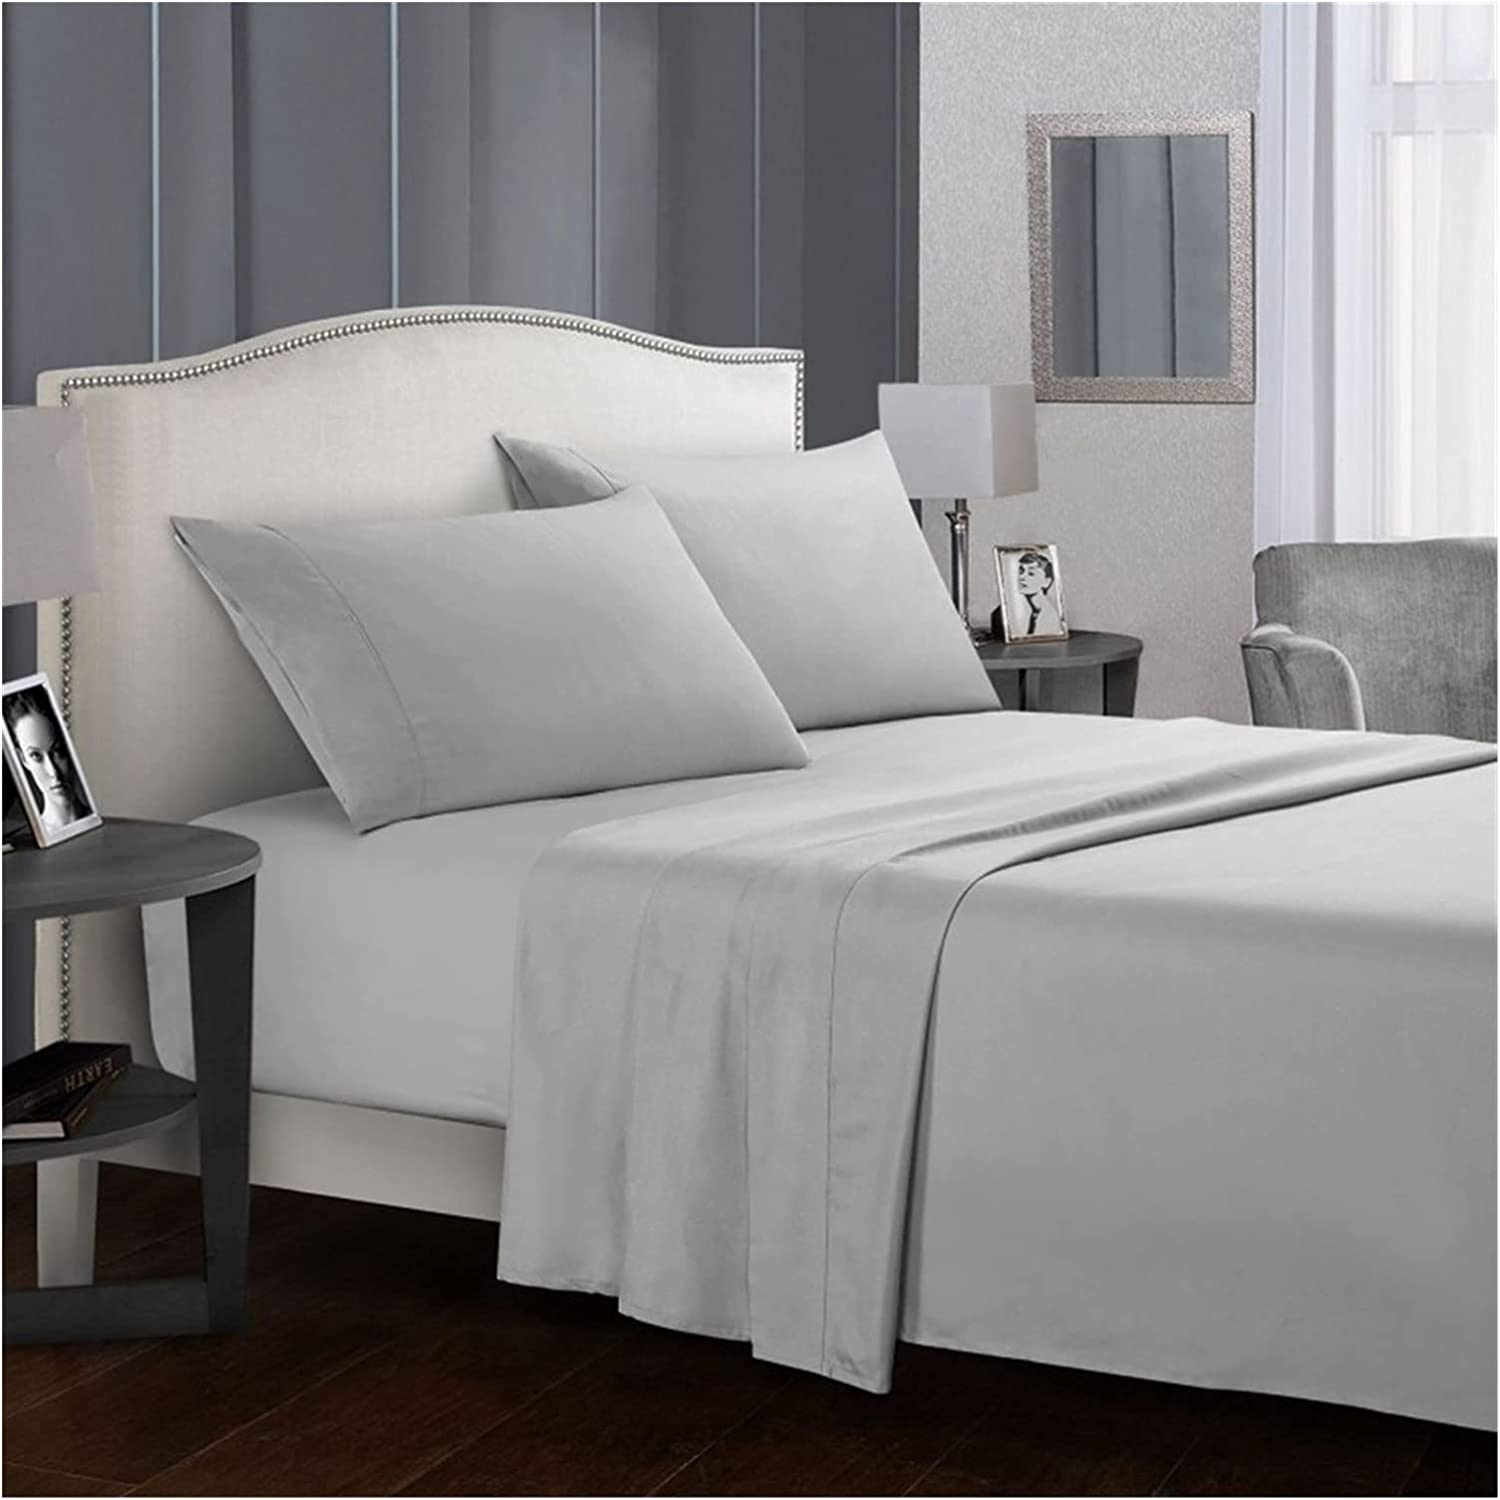 DSMYYXGS White Bedding Set Solid Color Limited time trial price Bed Max 74% OFF Queen King Sets Sheet